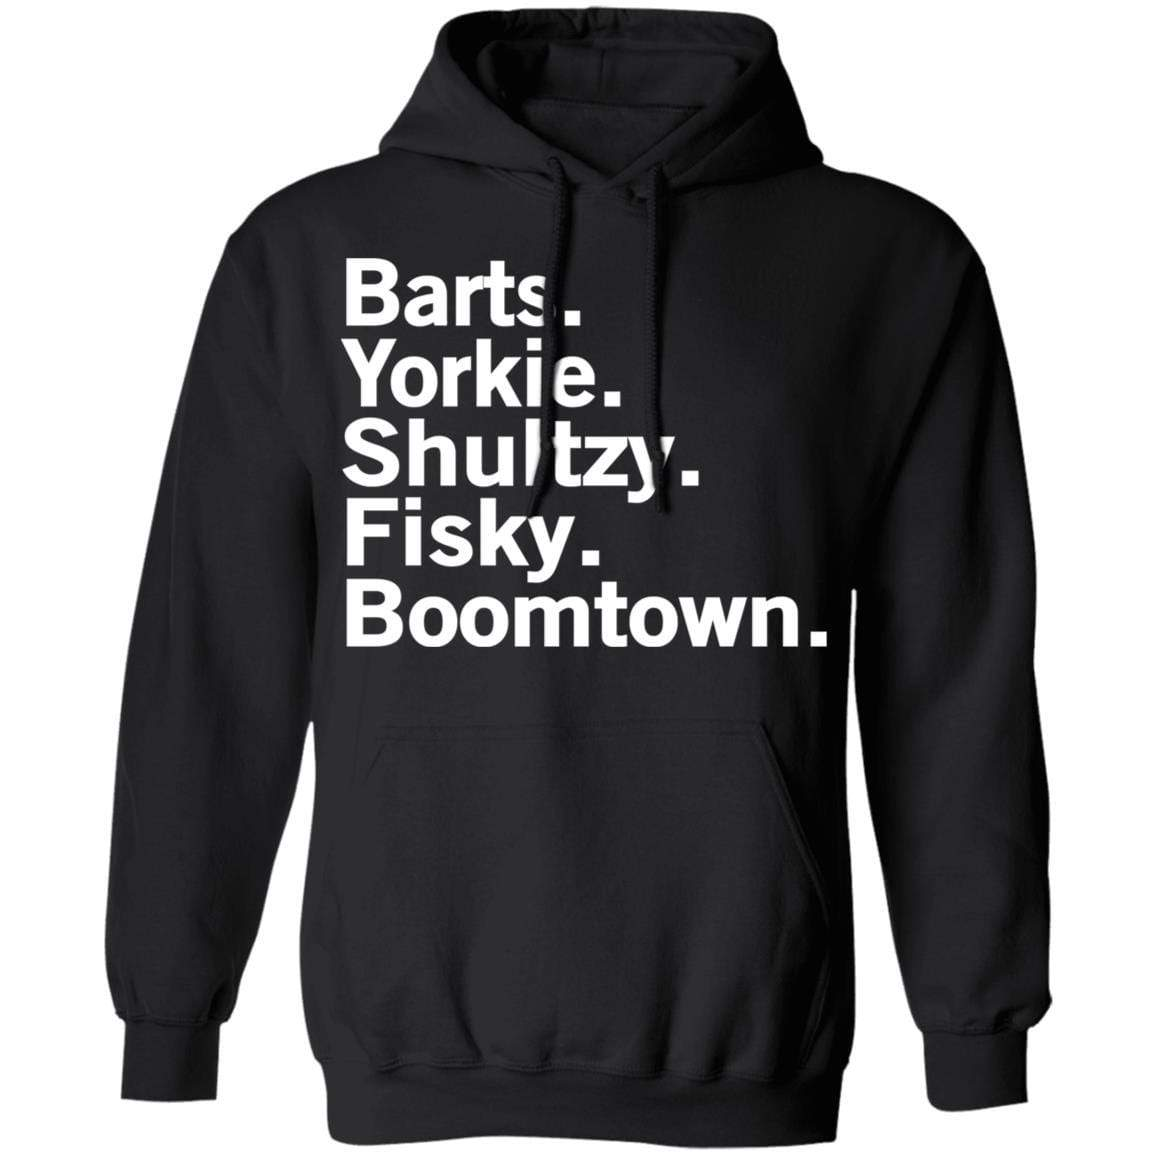 Barts Yorkie Shultzy Fisky Boomtown T-Shirts, Hoodies 541-4740-86894760-23087 - Tee Ript